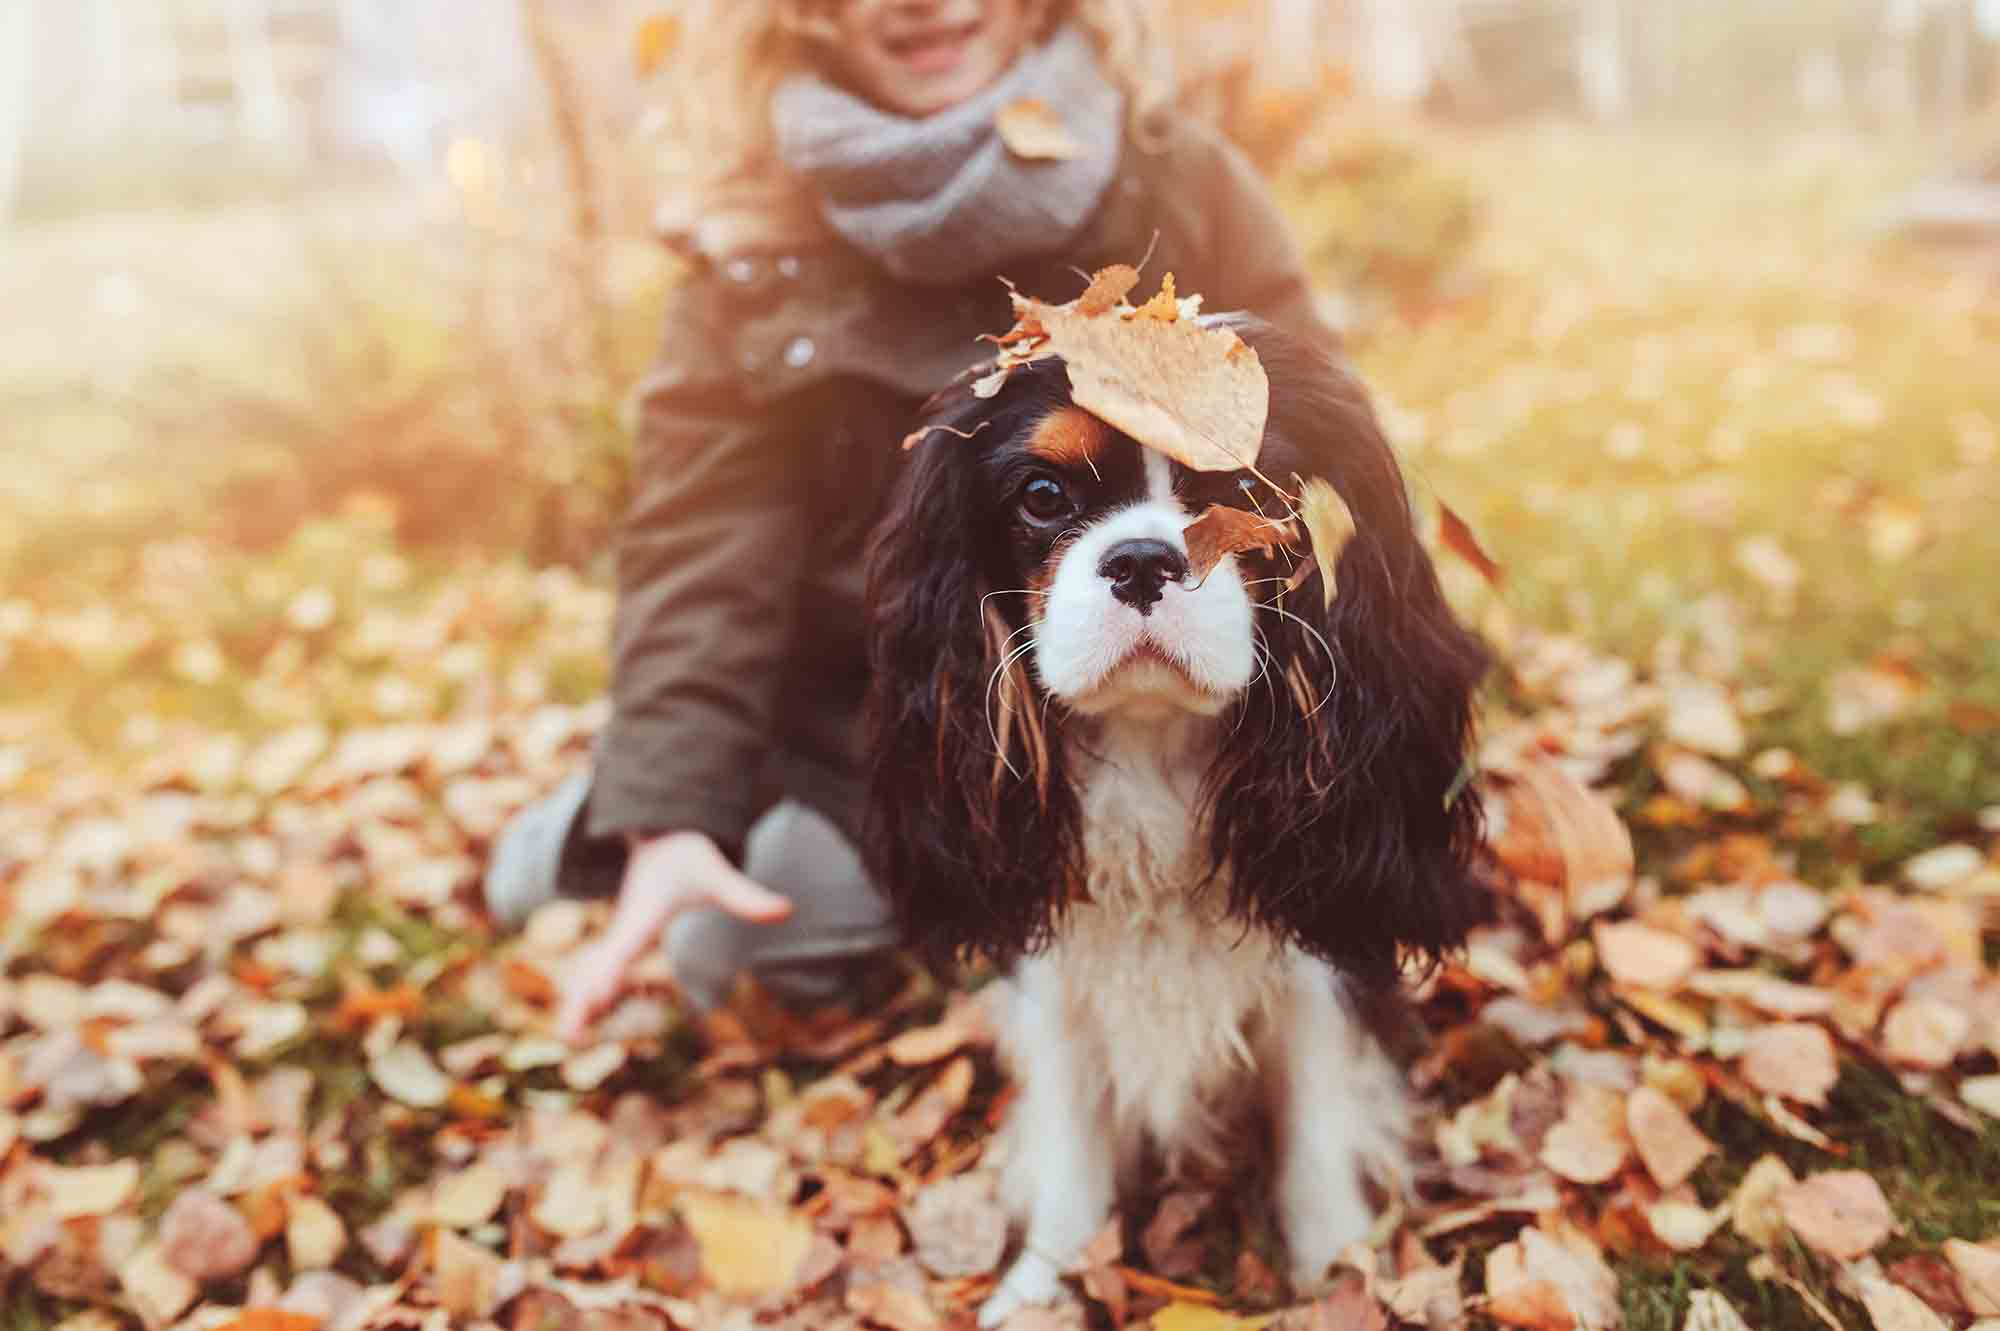 A black and white cavalier king charles spaniel enjoying a fall day with their owner. They are playing in a pile of leaves and the dog has leaves on his head